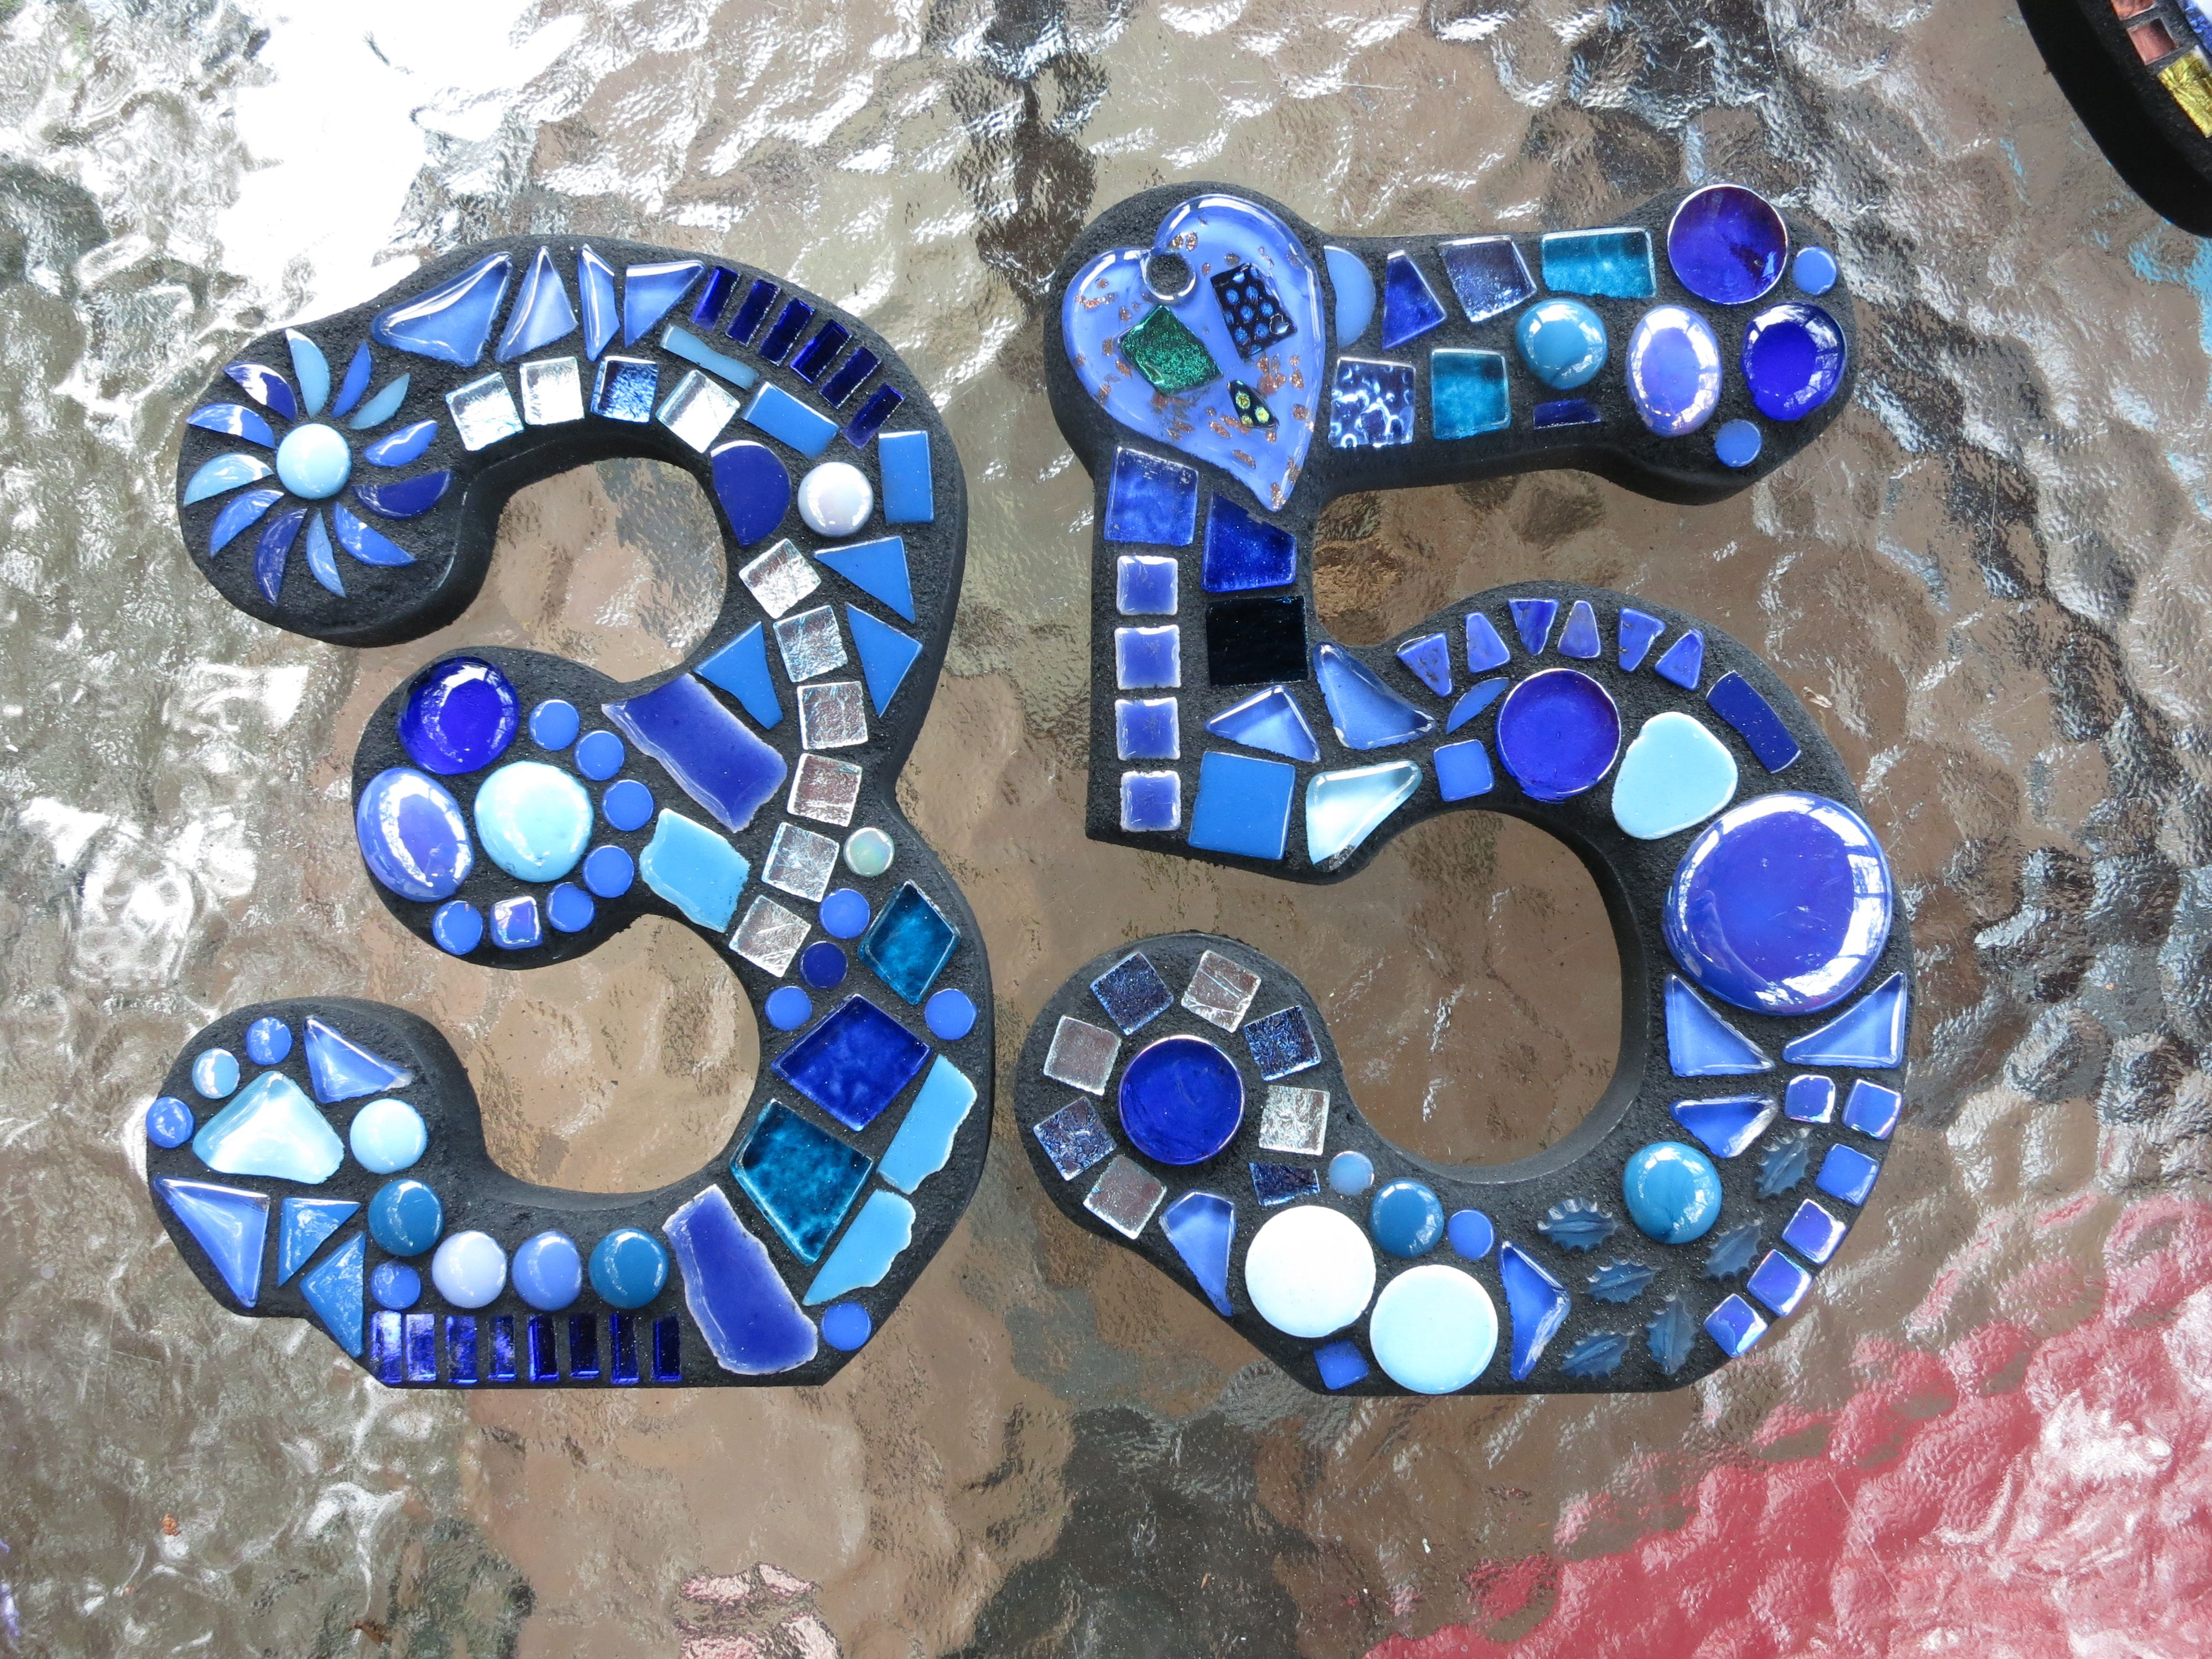 custom mosaic numbers by tina @ wise crackin' mosaics | espejos, Badezimmer ideen